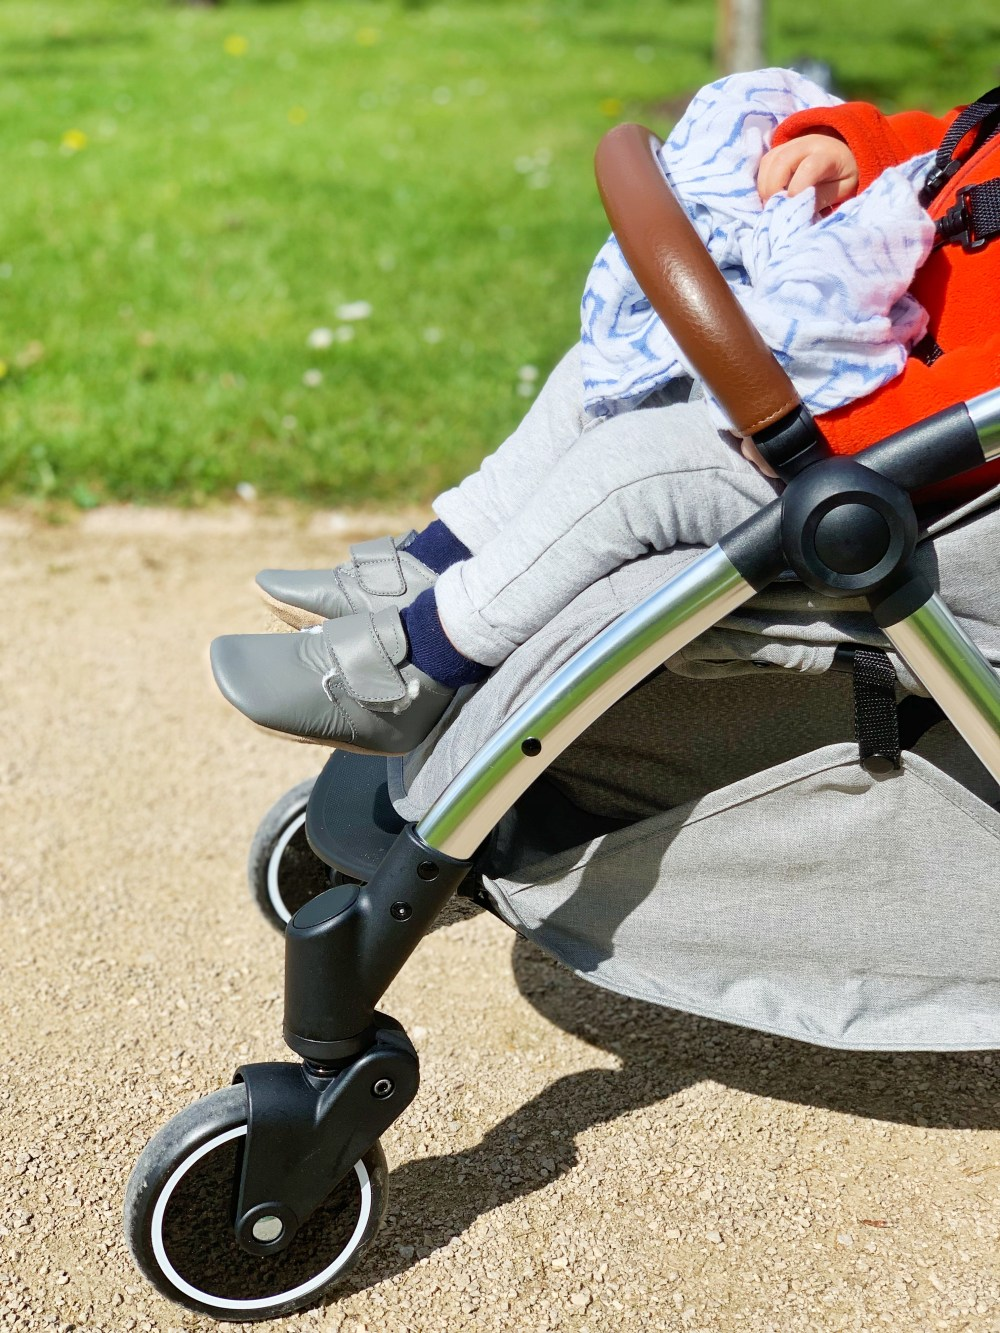 A child's legs and feet as they sit in a stroller in the park